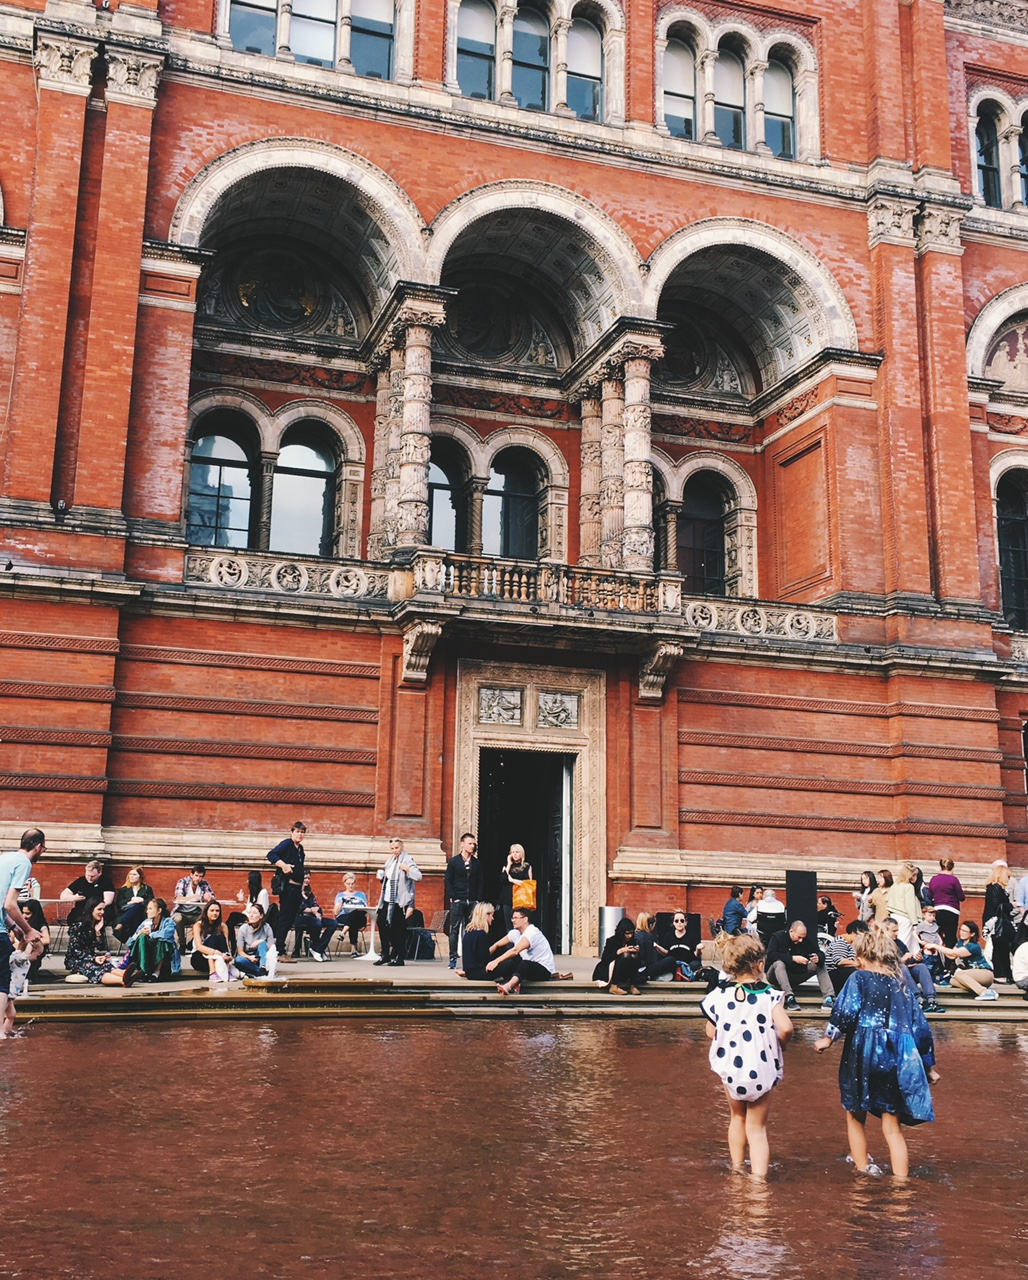 The museums - so many, and most of them free! The Victoria & Albert is especially wonderful with kids and not as crowded as the more obvious choices. -